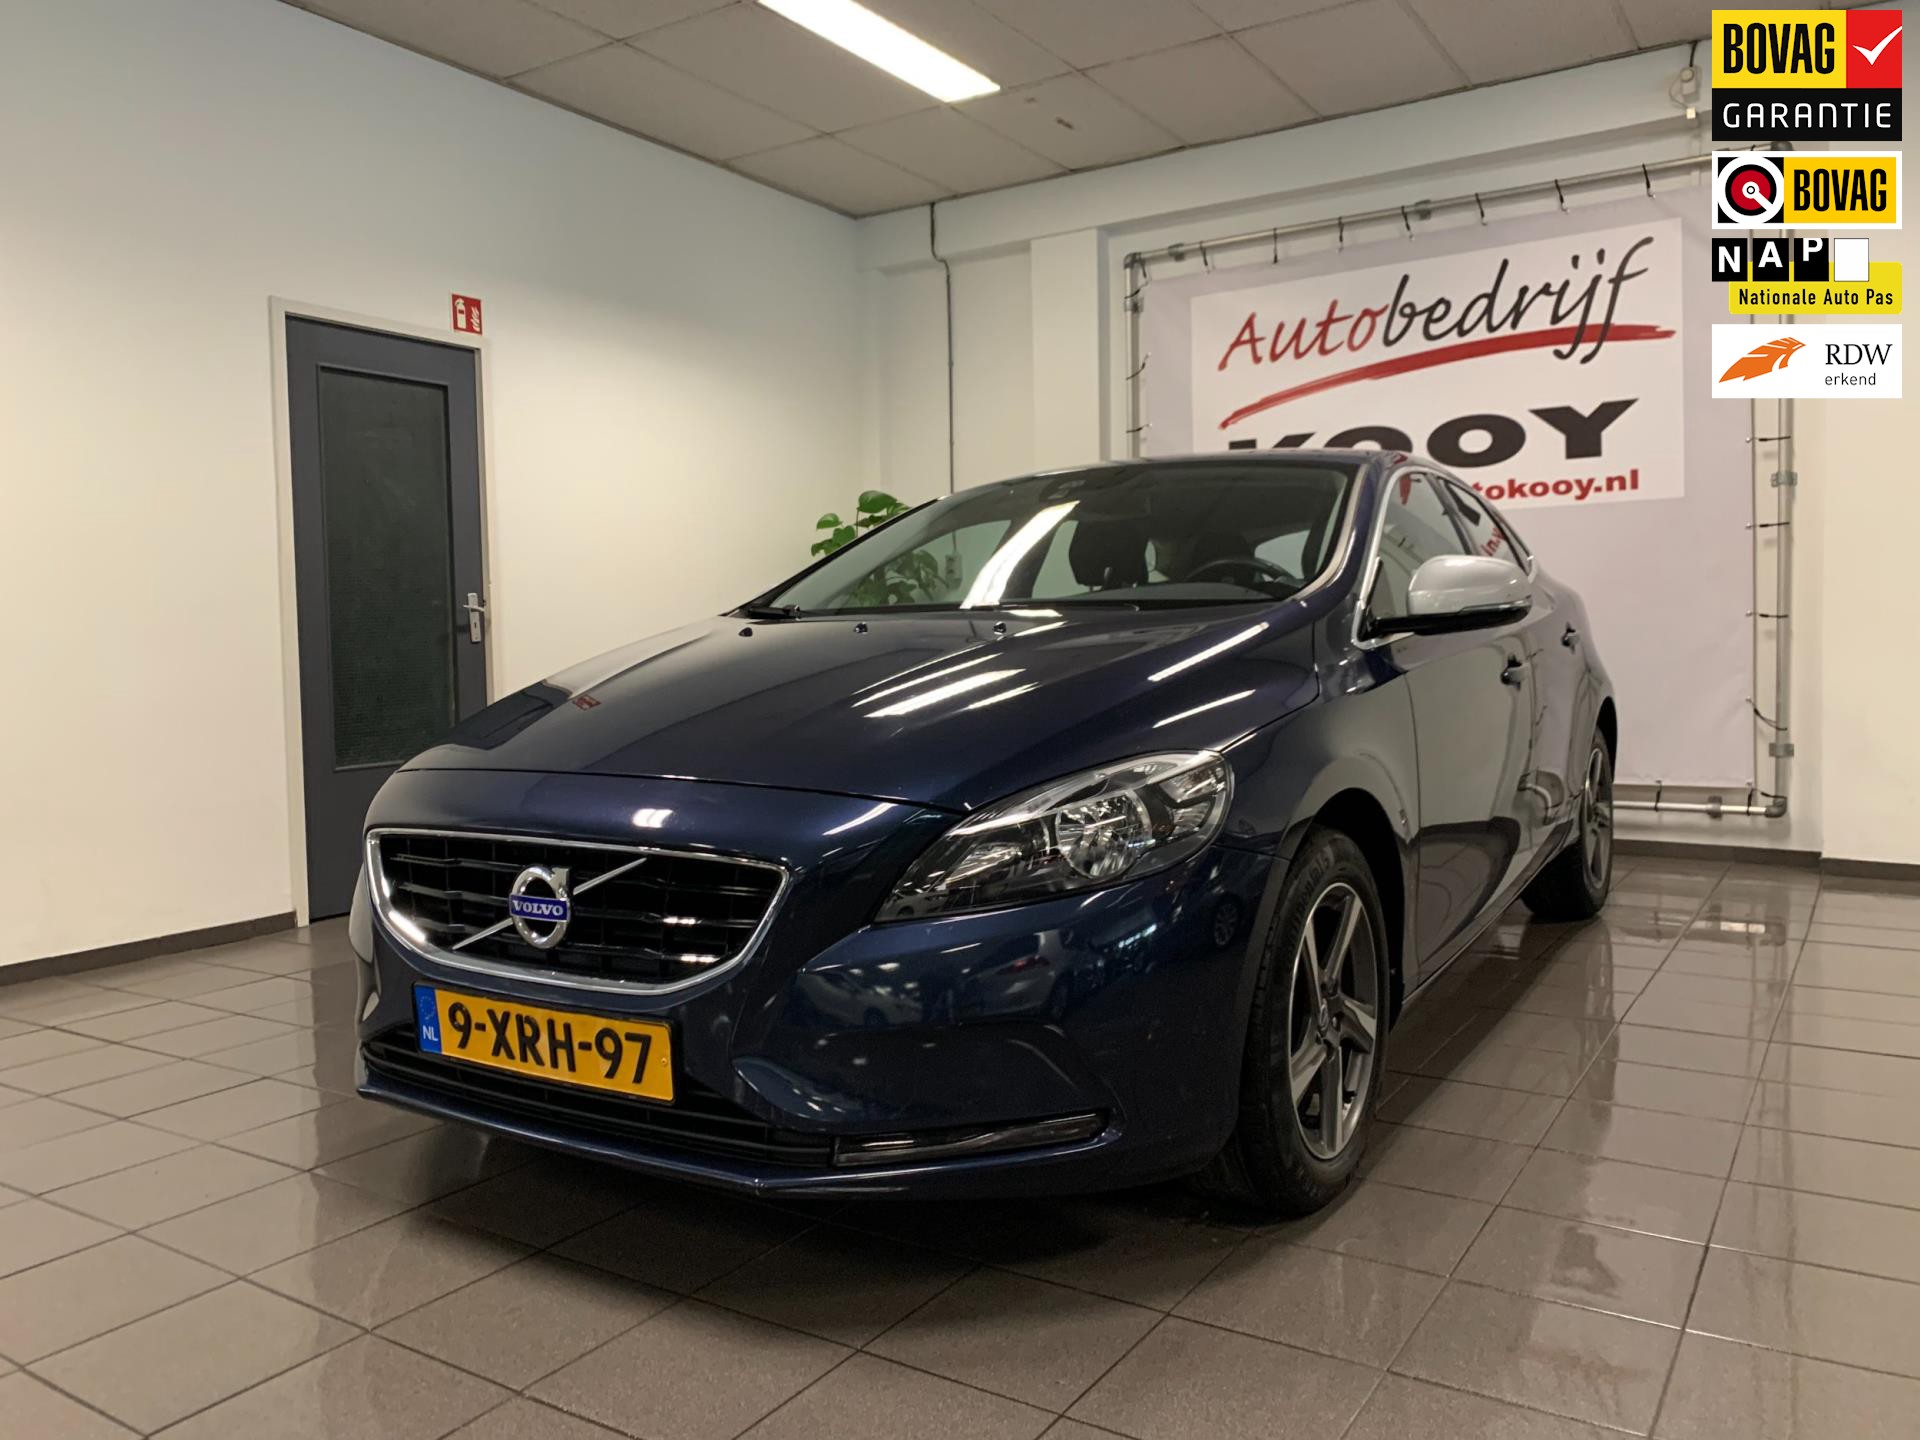 Volvo V40 2.0 D4 Momentum Business * Navigatie / Harman/Kardon / Trekhaak *